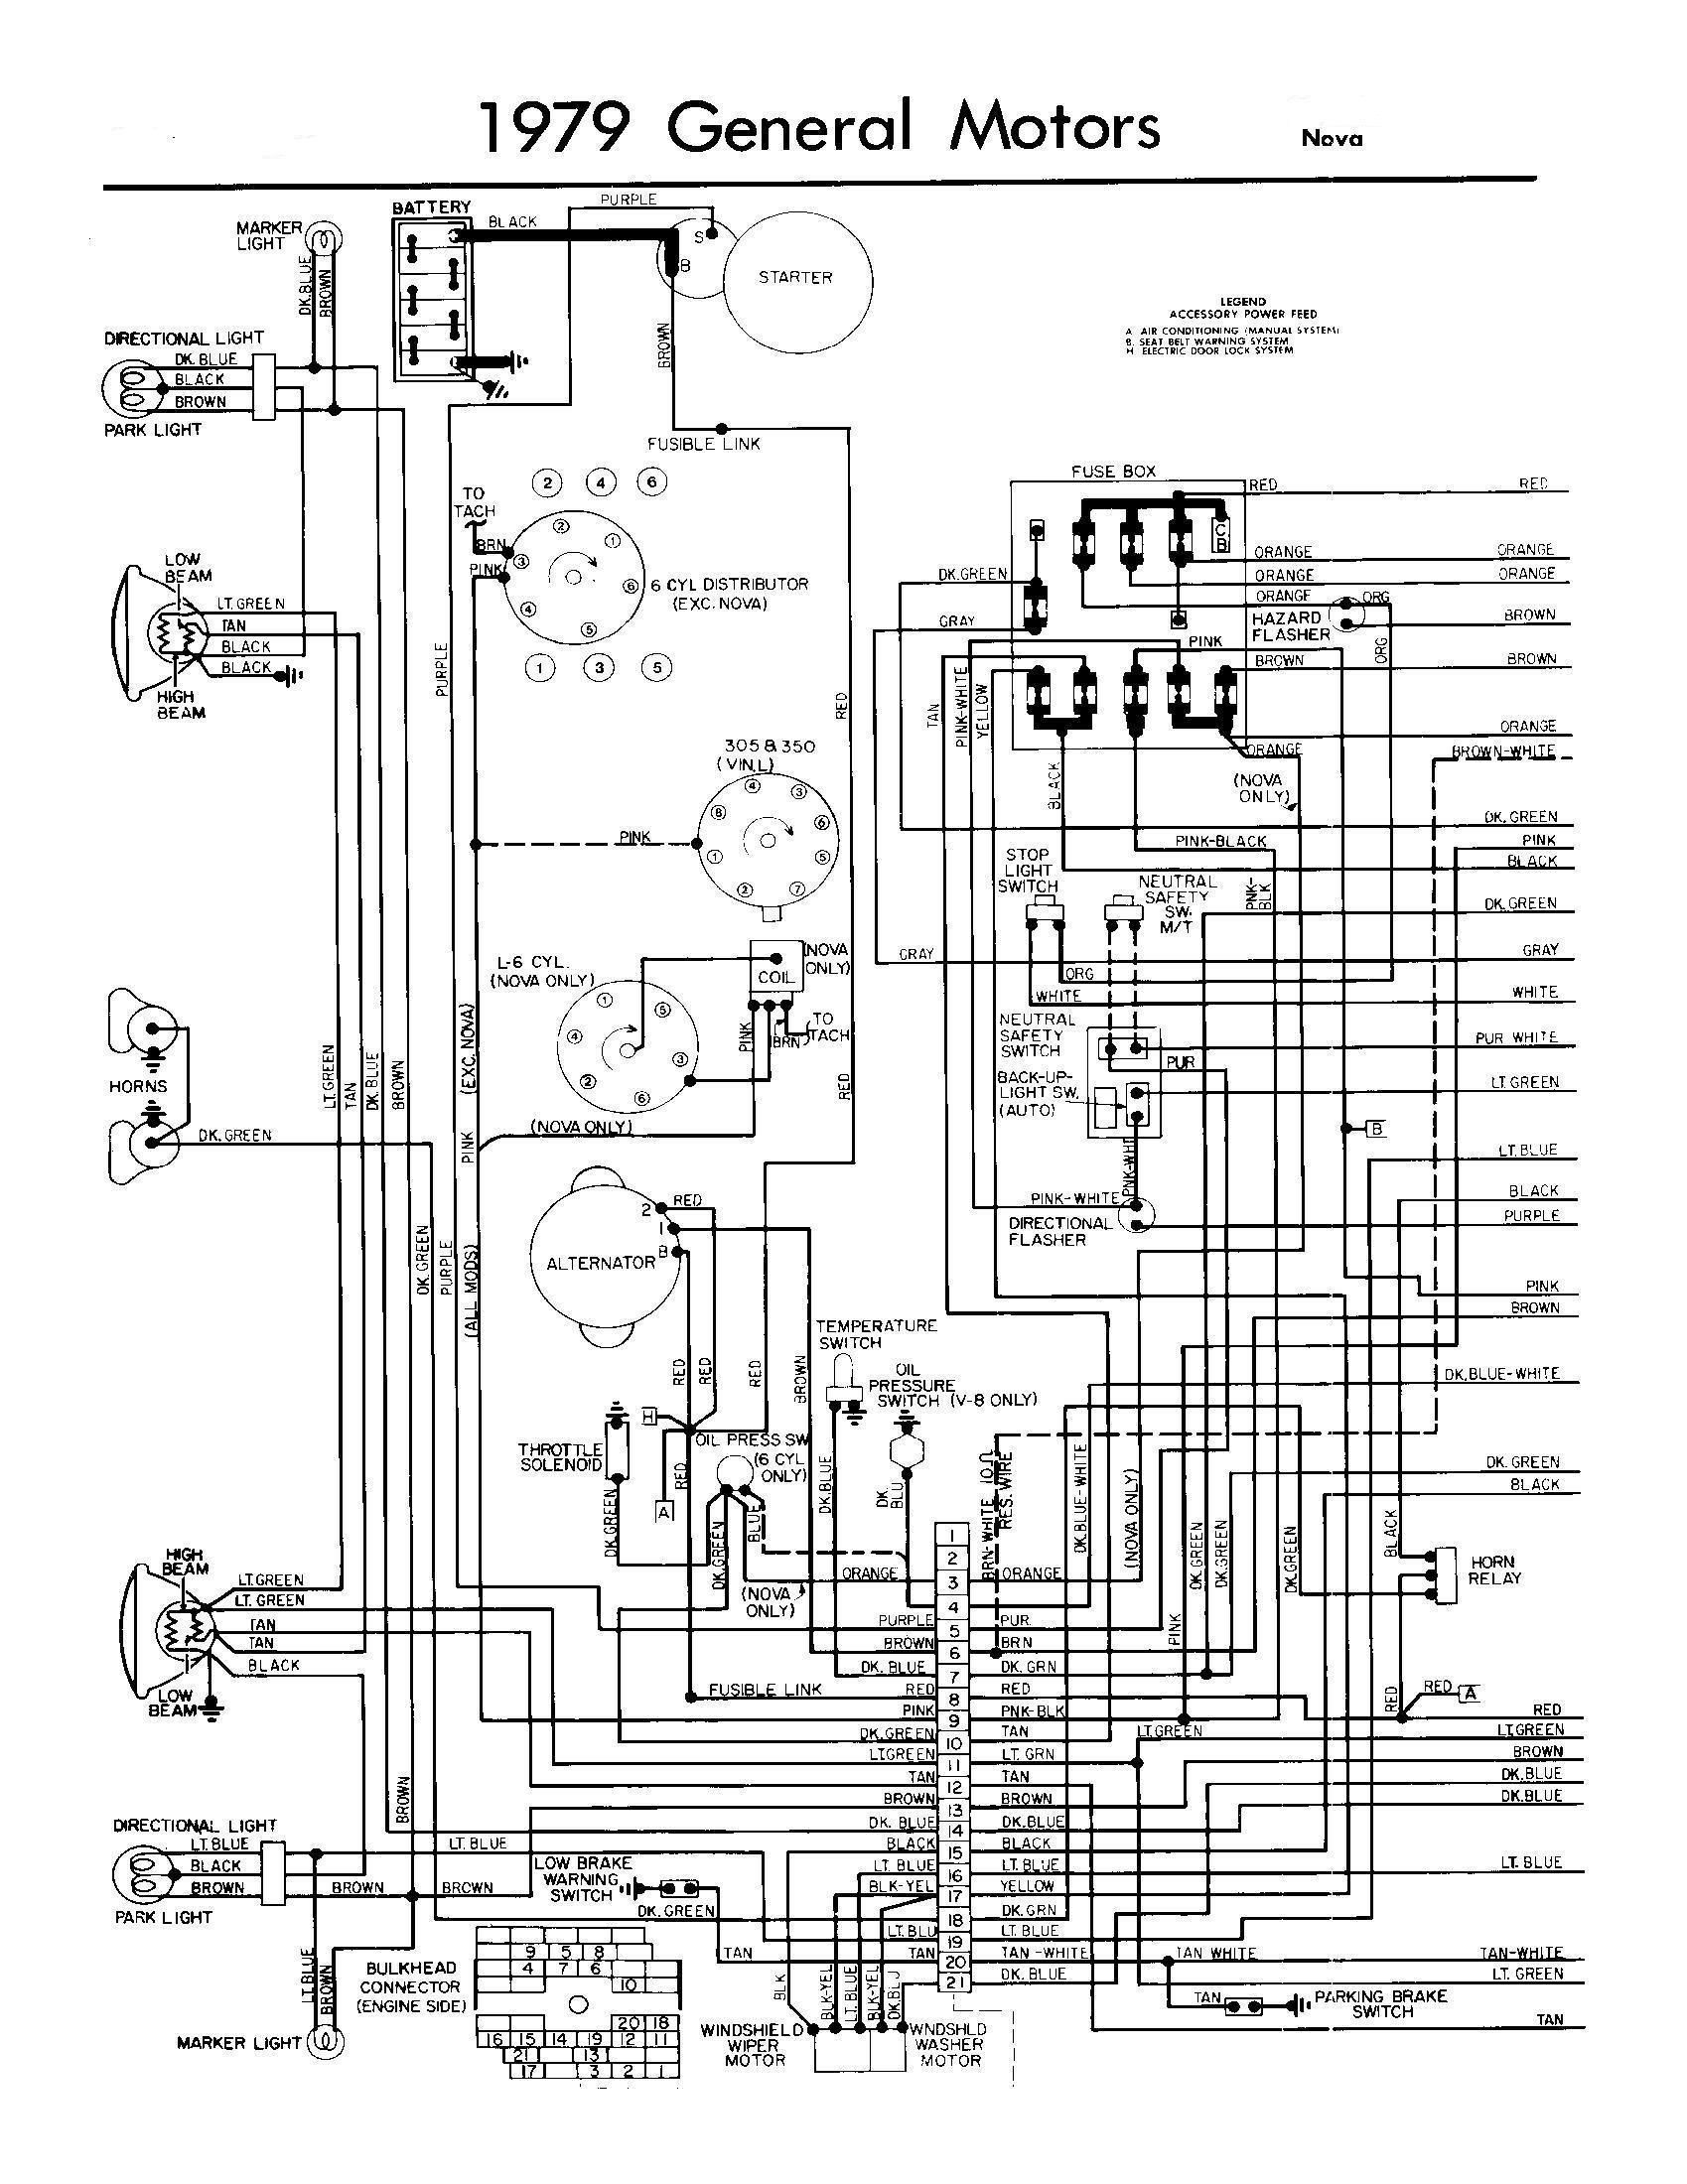 1984 Chevy Truck Fuse Box Diagram Truck Wiring Diagram Moreover 1981 Chevy Truck Fuse Box Wiring Of 1984 Chevy Truck Fuse Box Diagram